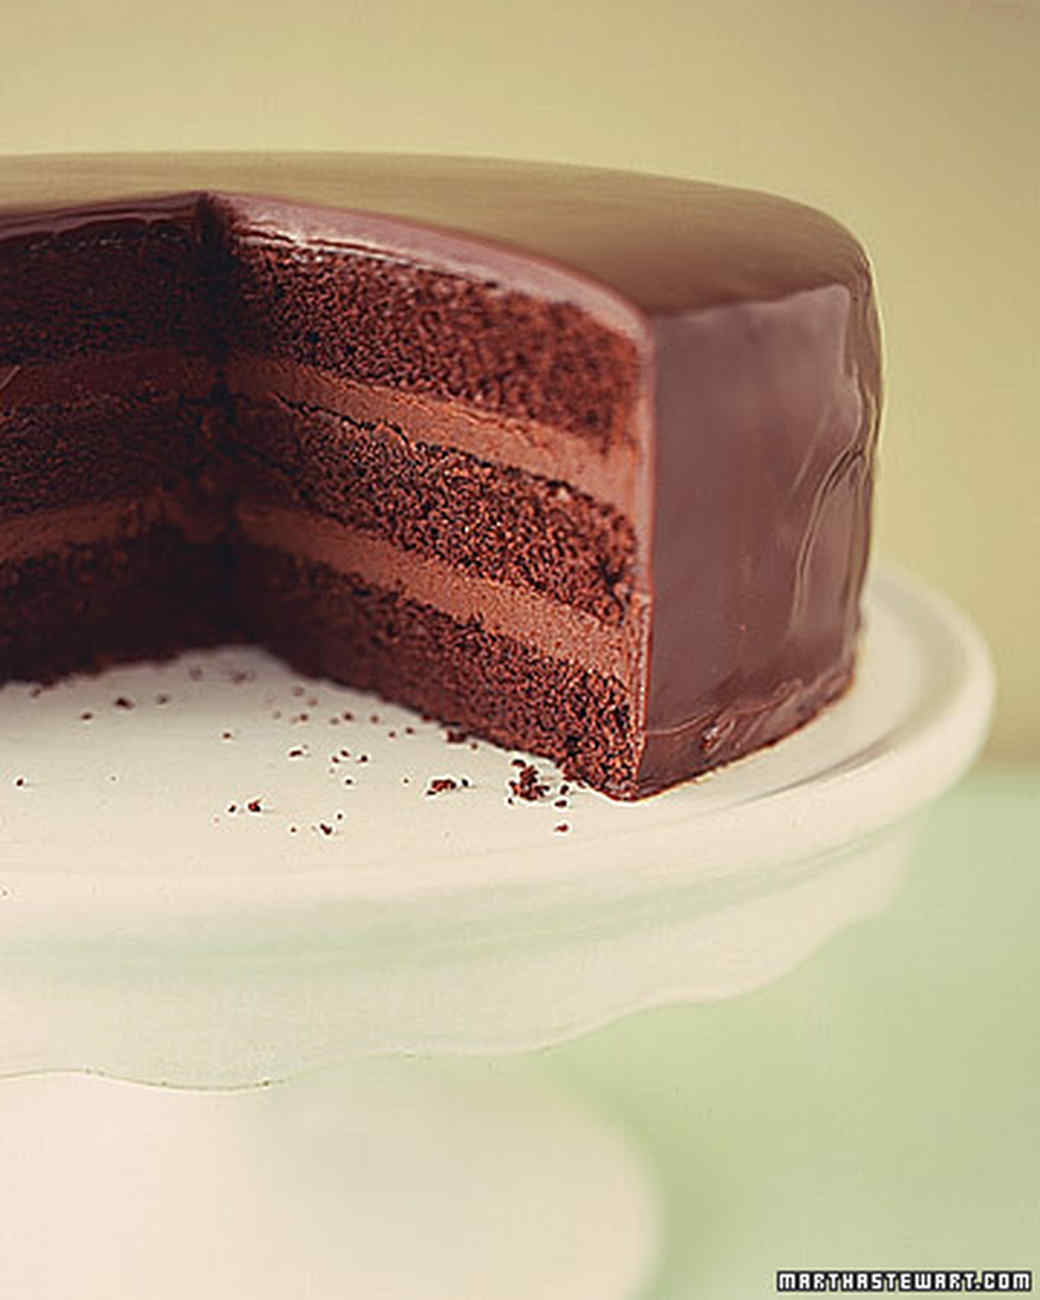 How To Make Cheesecake On Chocolate Cake